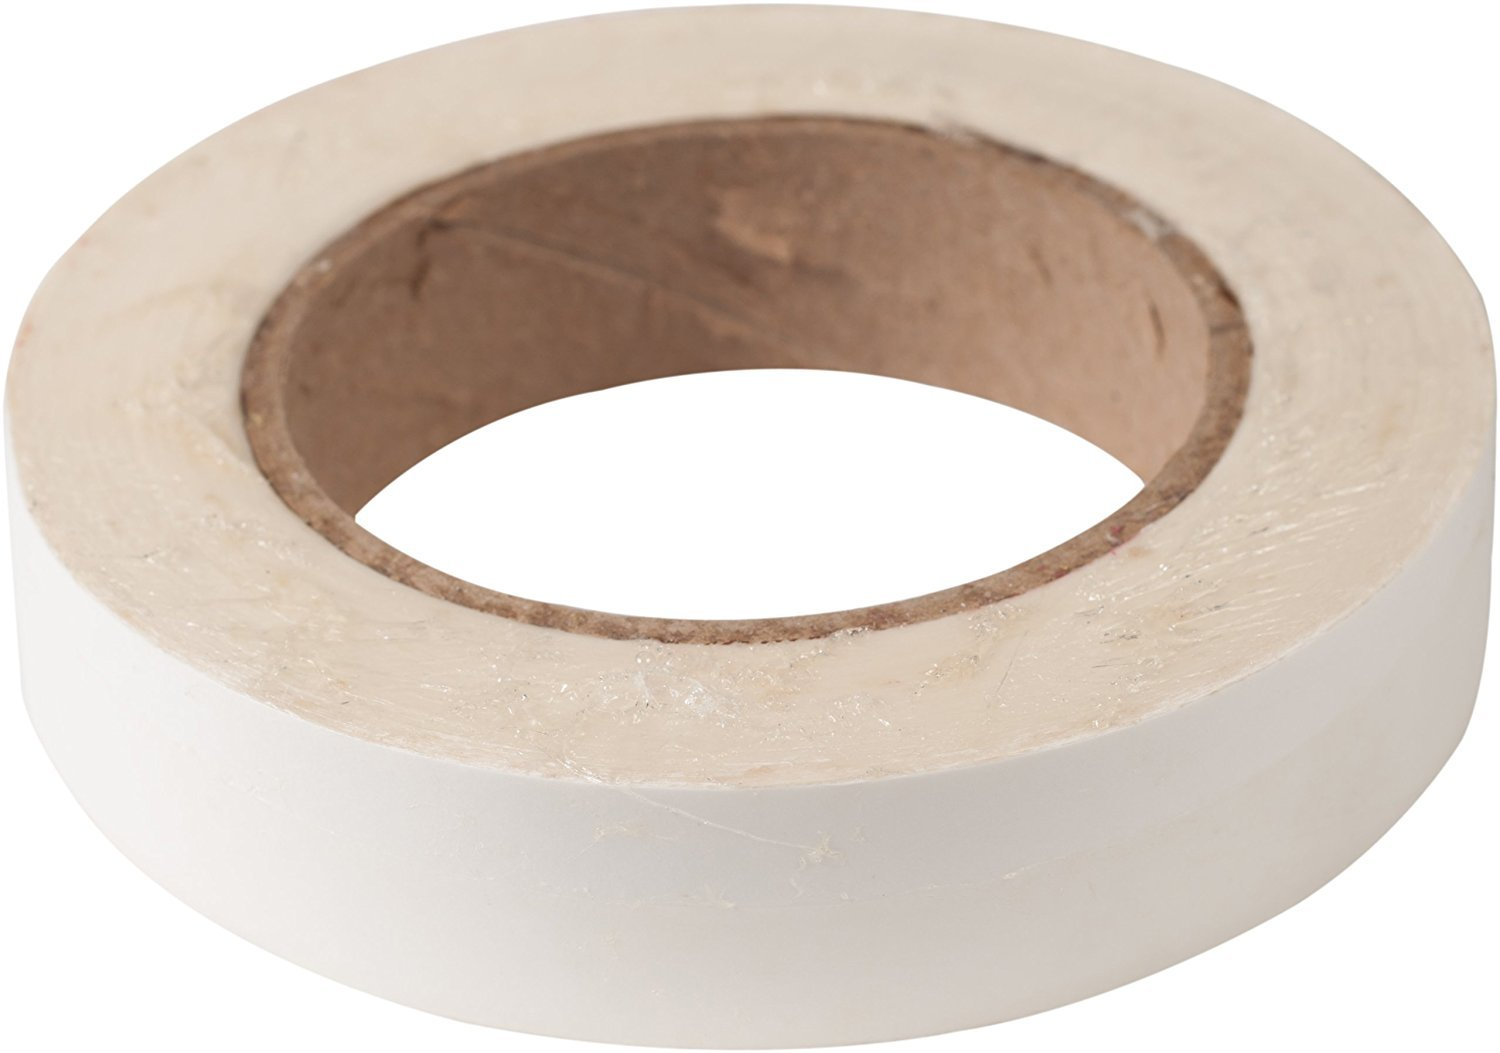 Bertech Water Soluble Tape, 2'' Wide x 36 Yards Long, 2.1 Mil Thick on a 3'' Core, Hazy White (Made in USA)